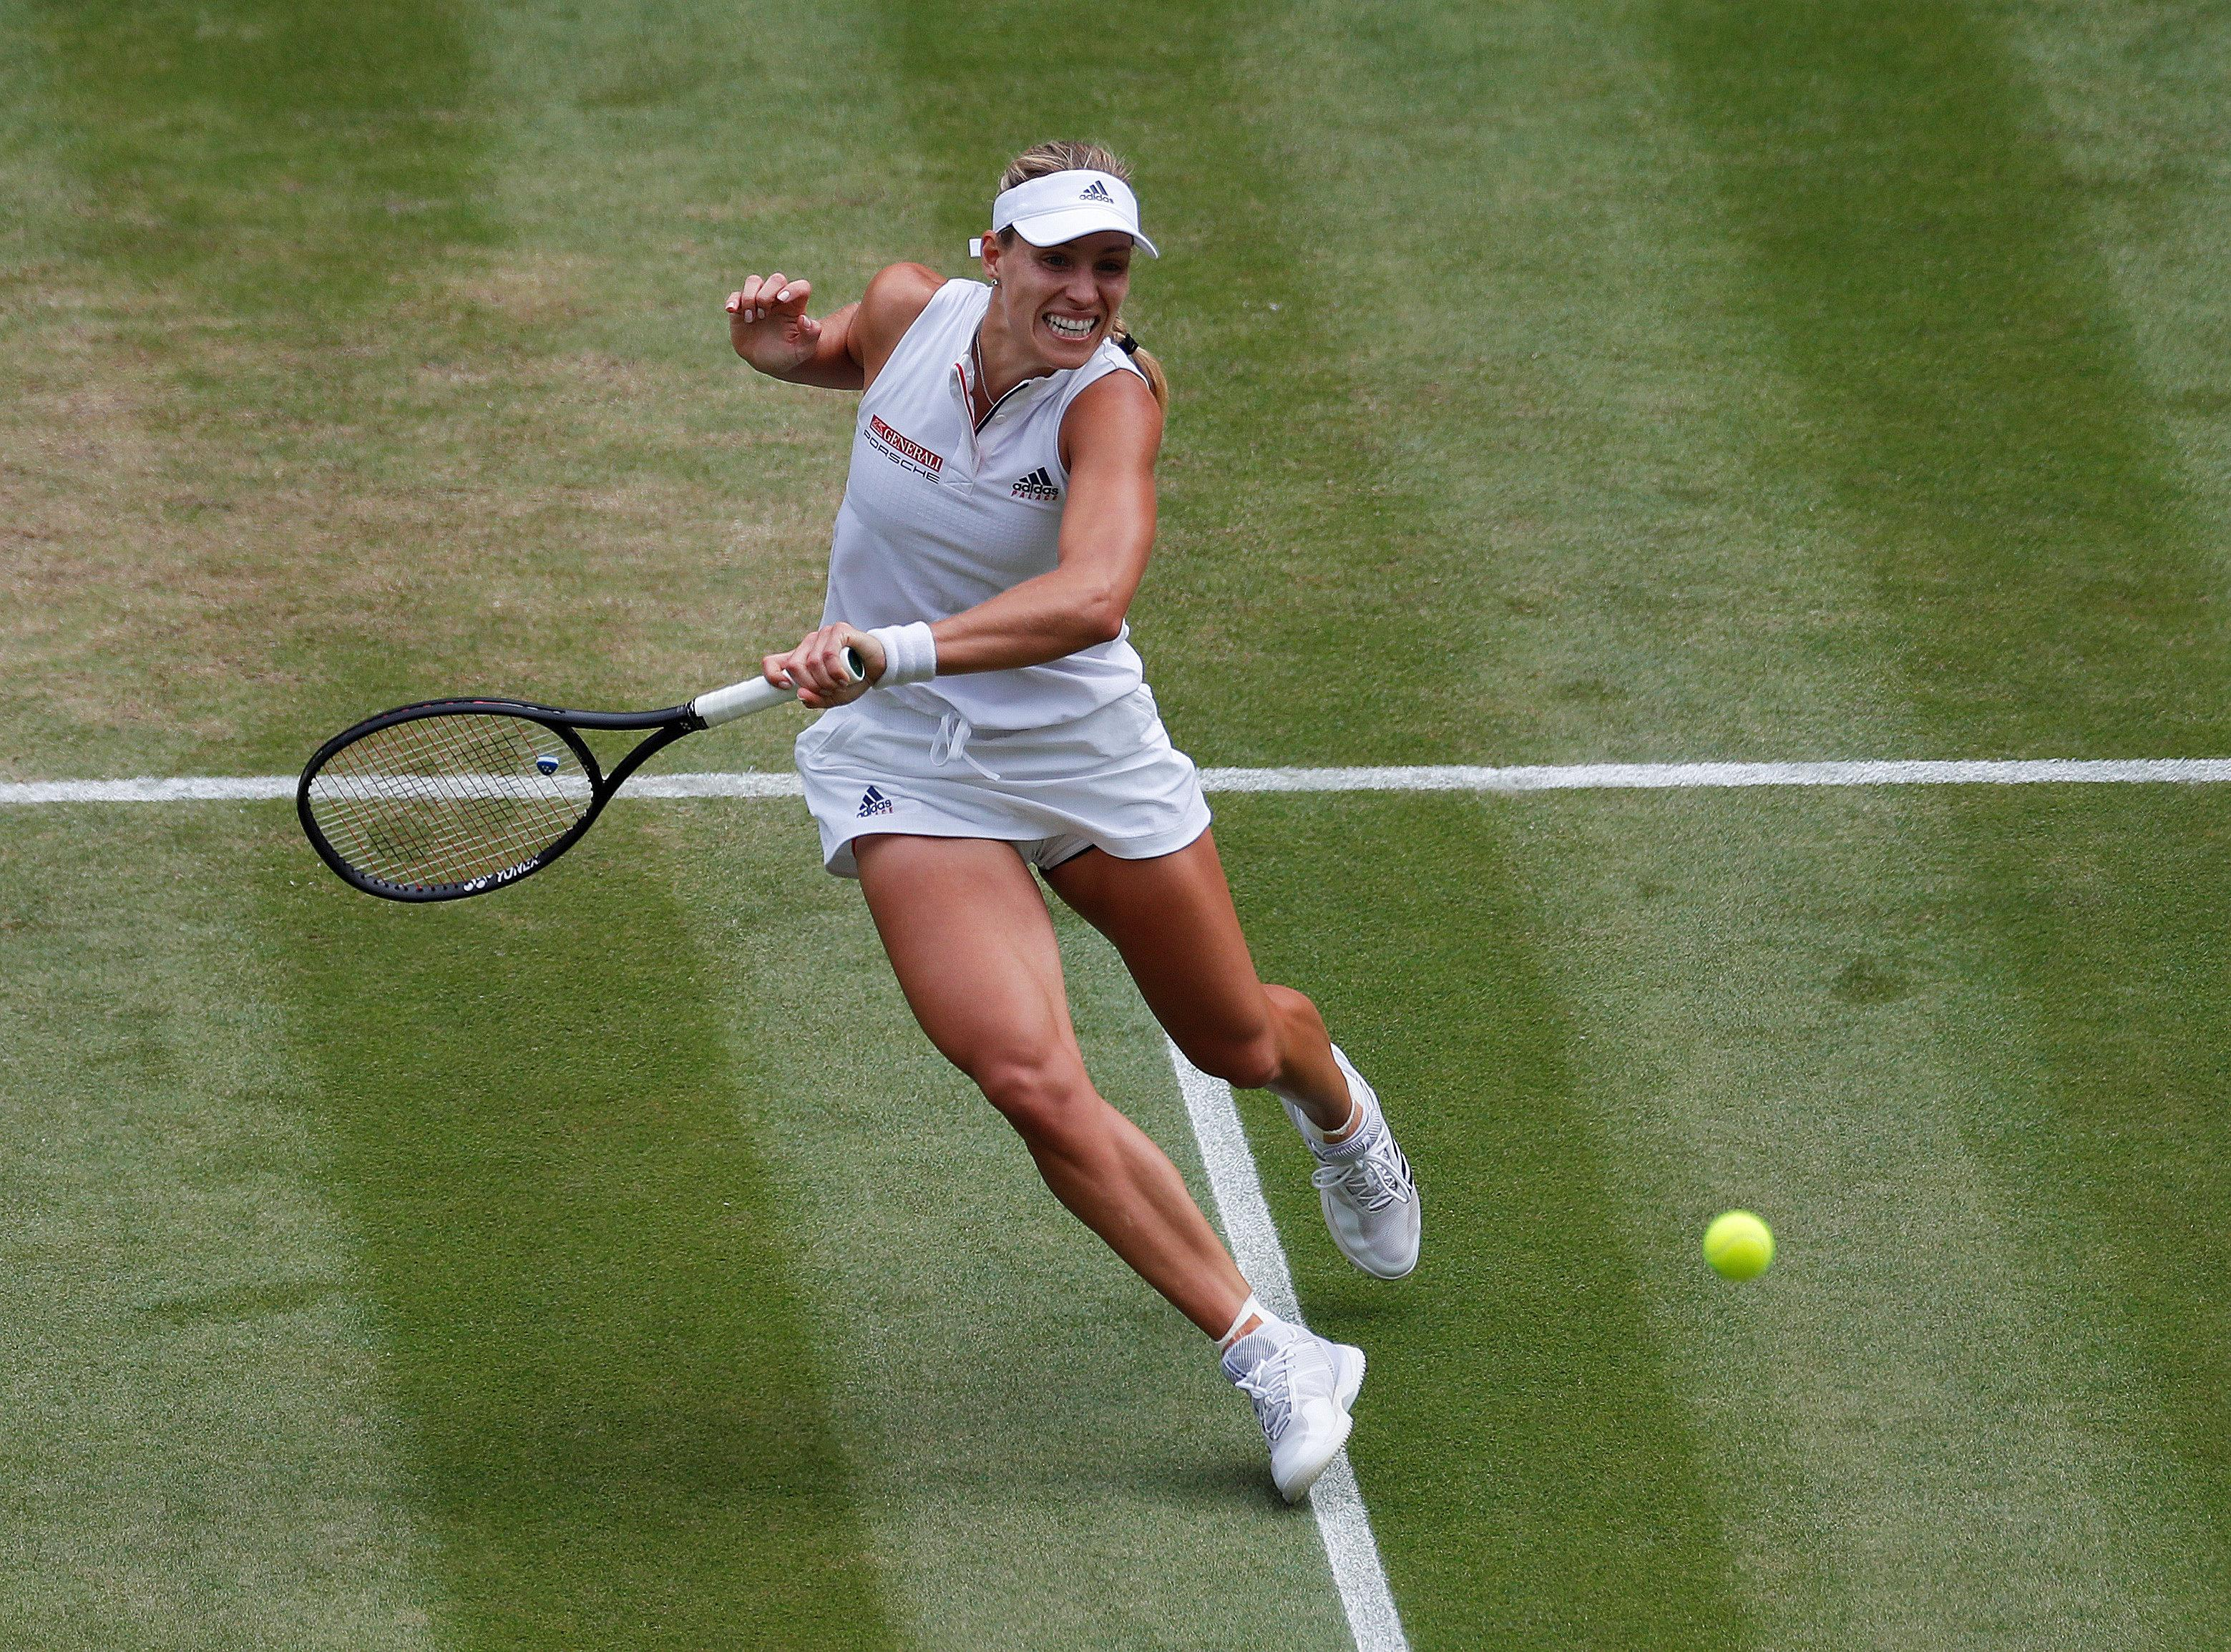 Former world number one Angelique Kerber was back on top form as she saw of Kasatkina on Centre Courtin straight sets